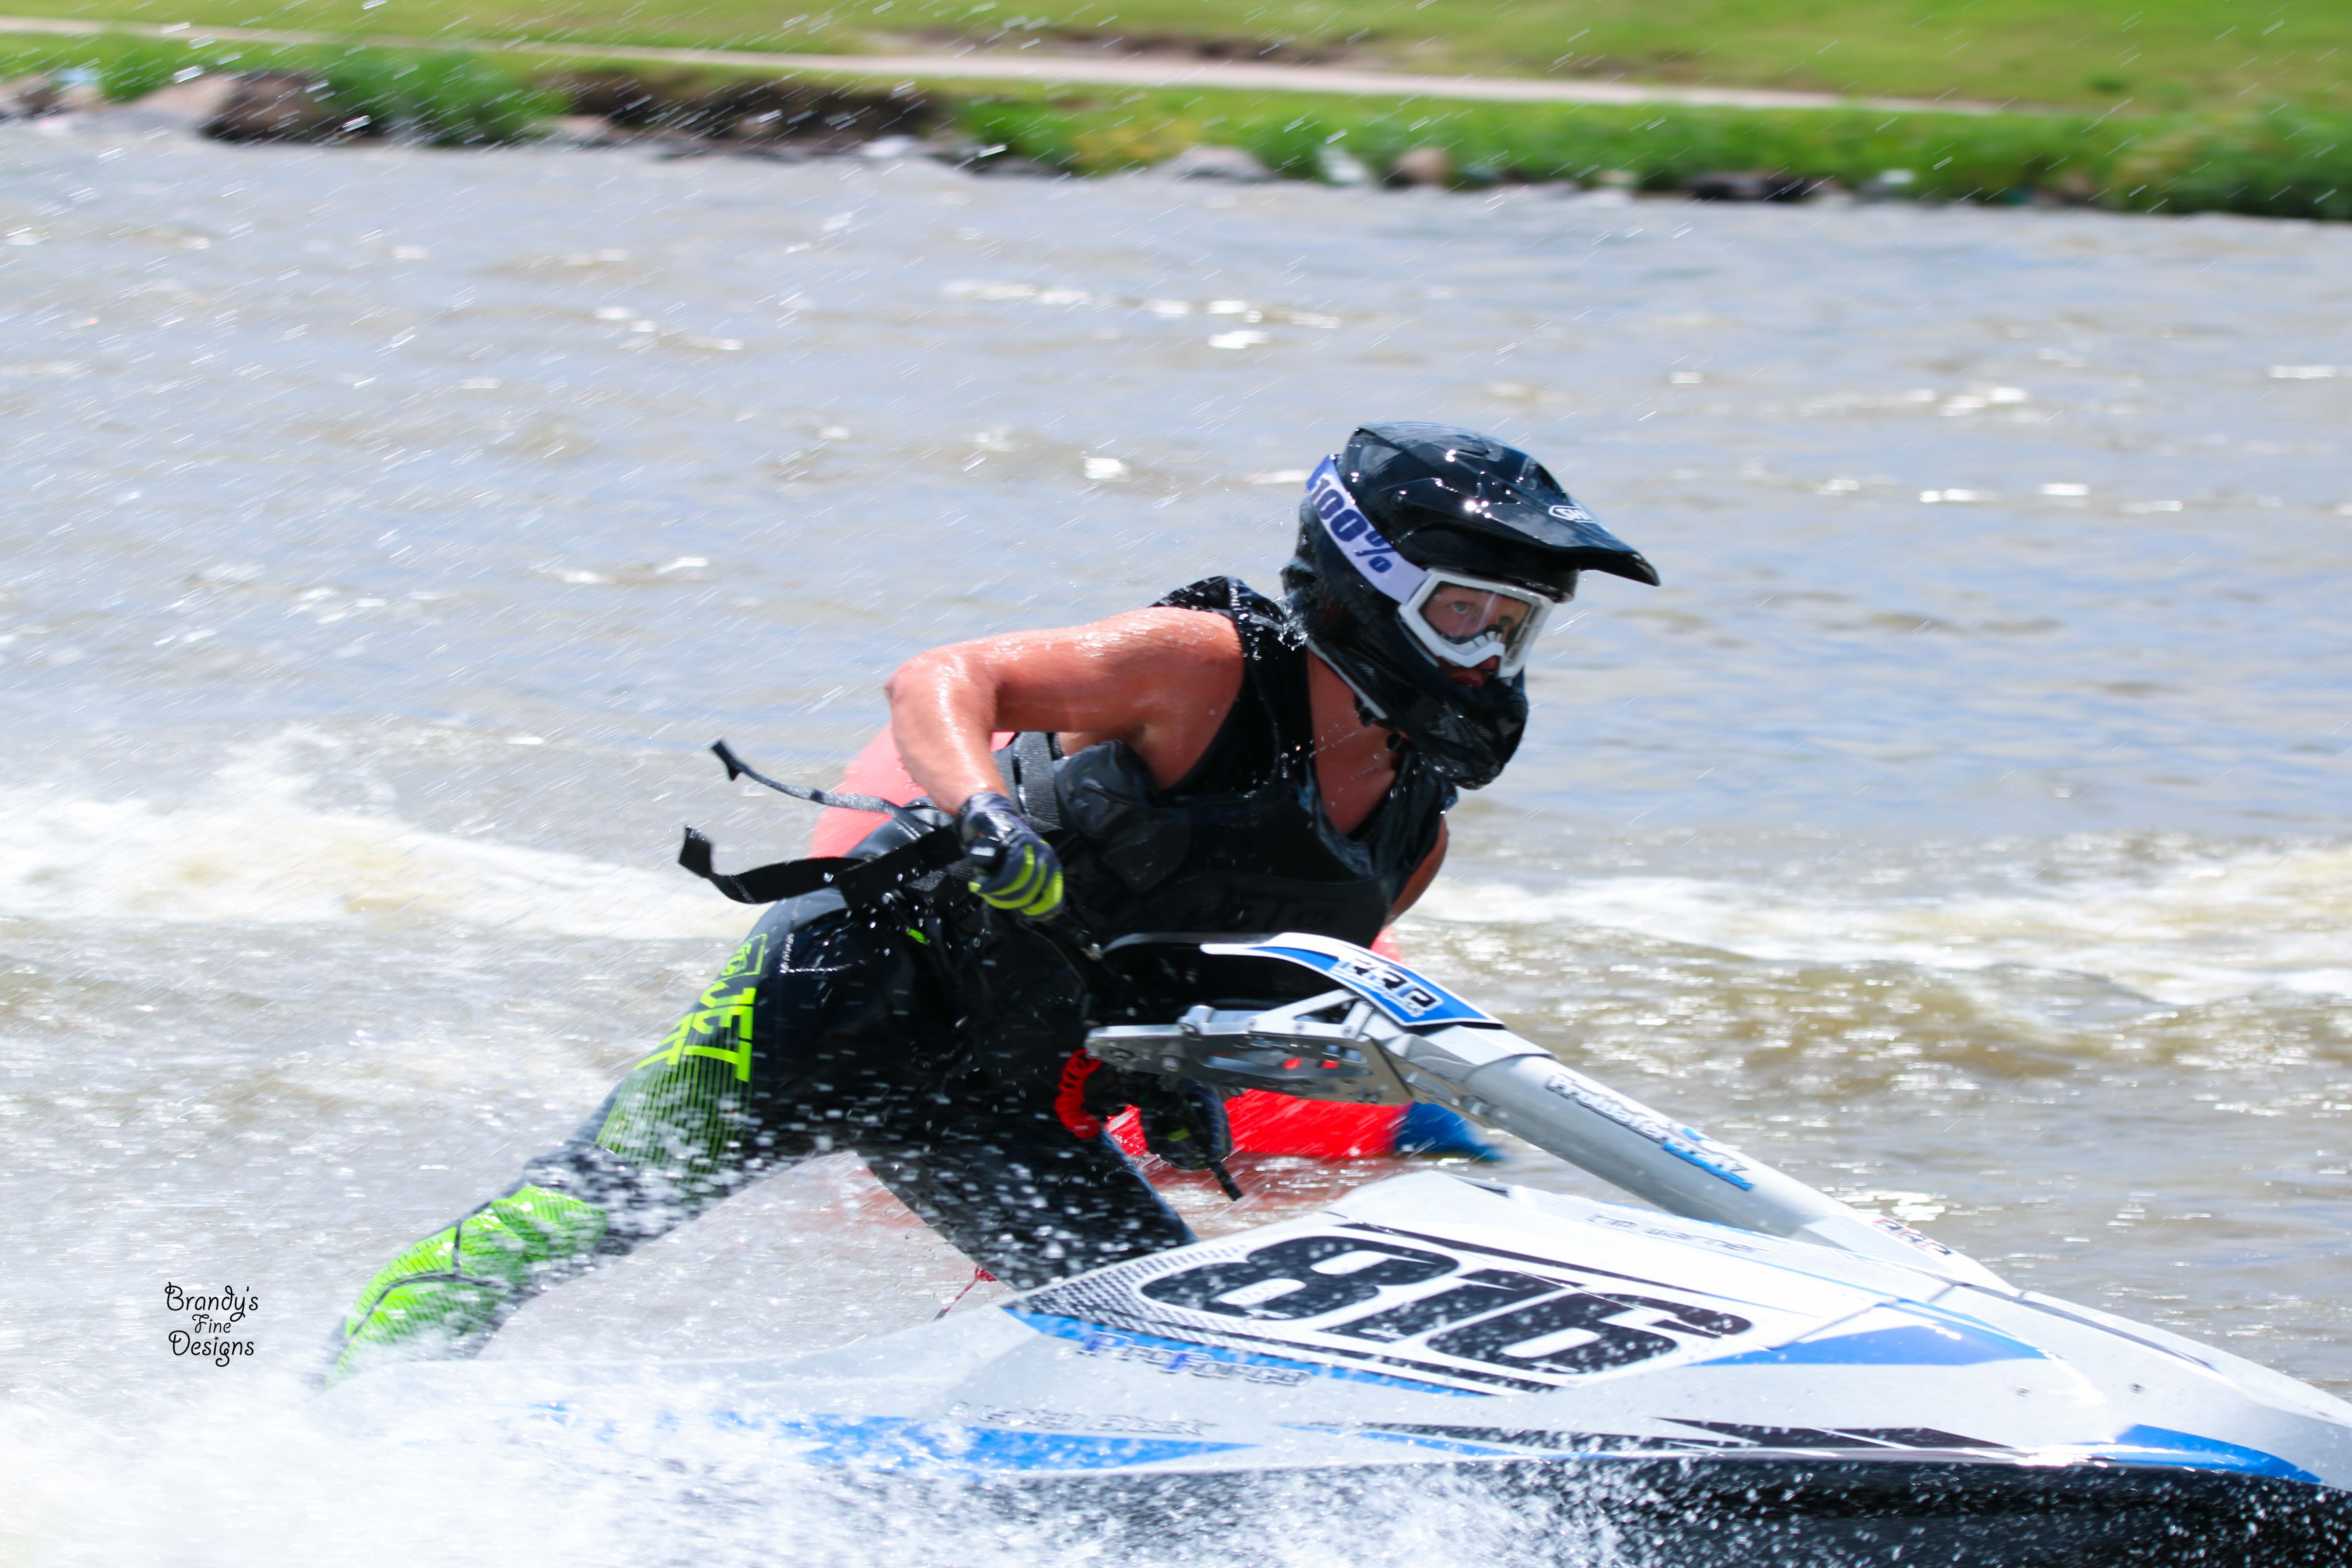 Round 1 of 2017 ijsba midwestern watercross huge success for Big fish bail bonds